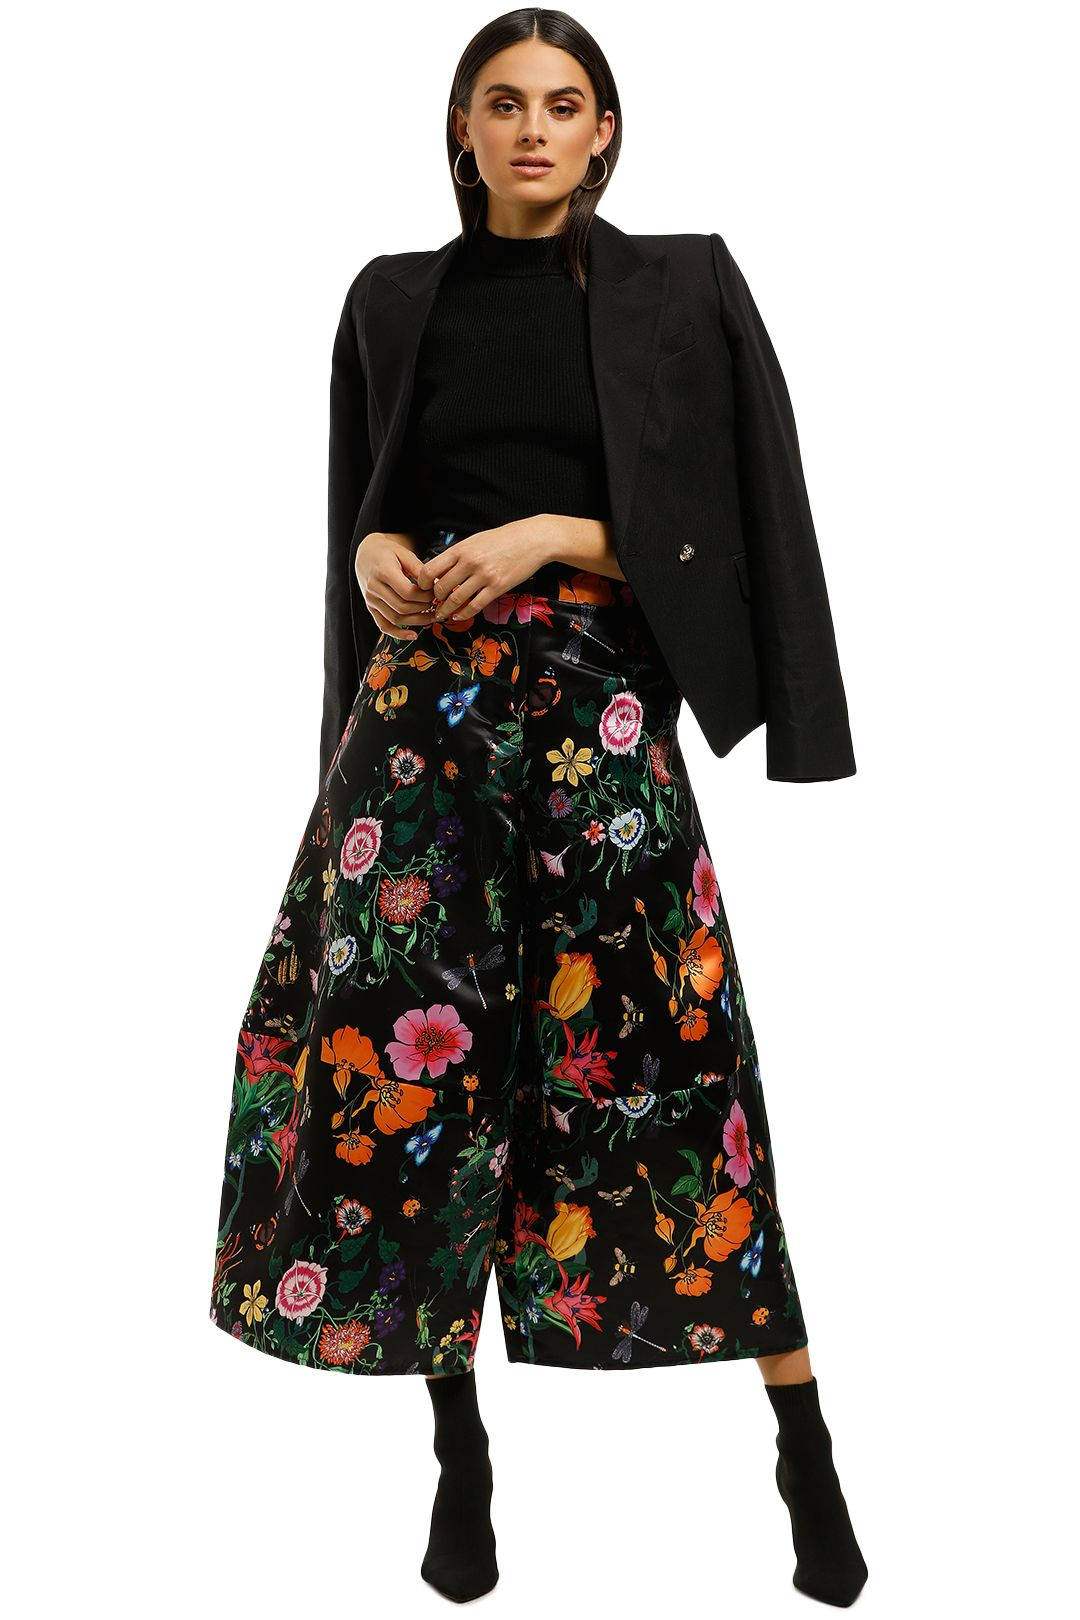 Curate-by-Trelise-Cooper-Get-A-Leg-Over-Pant-Front